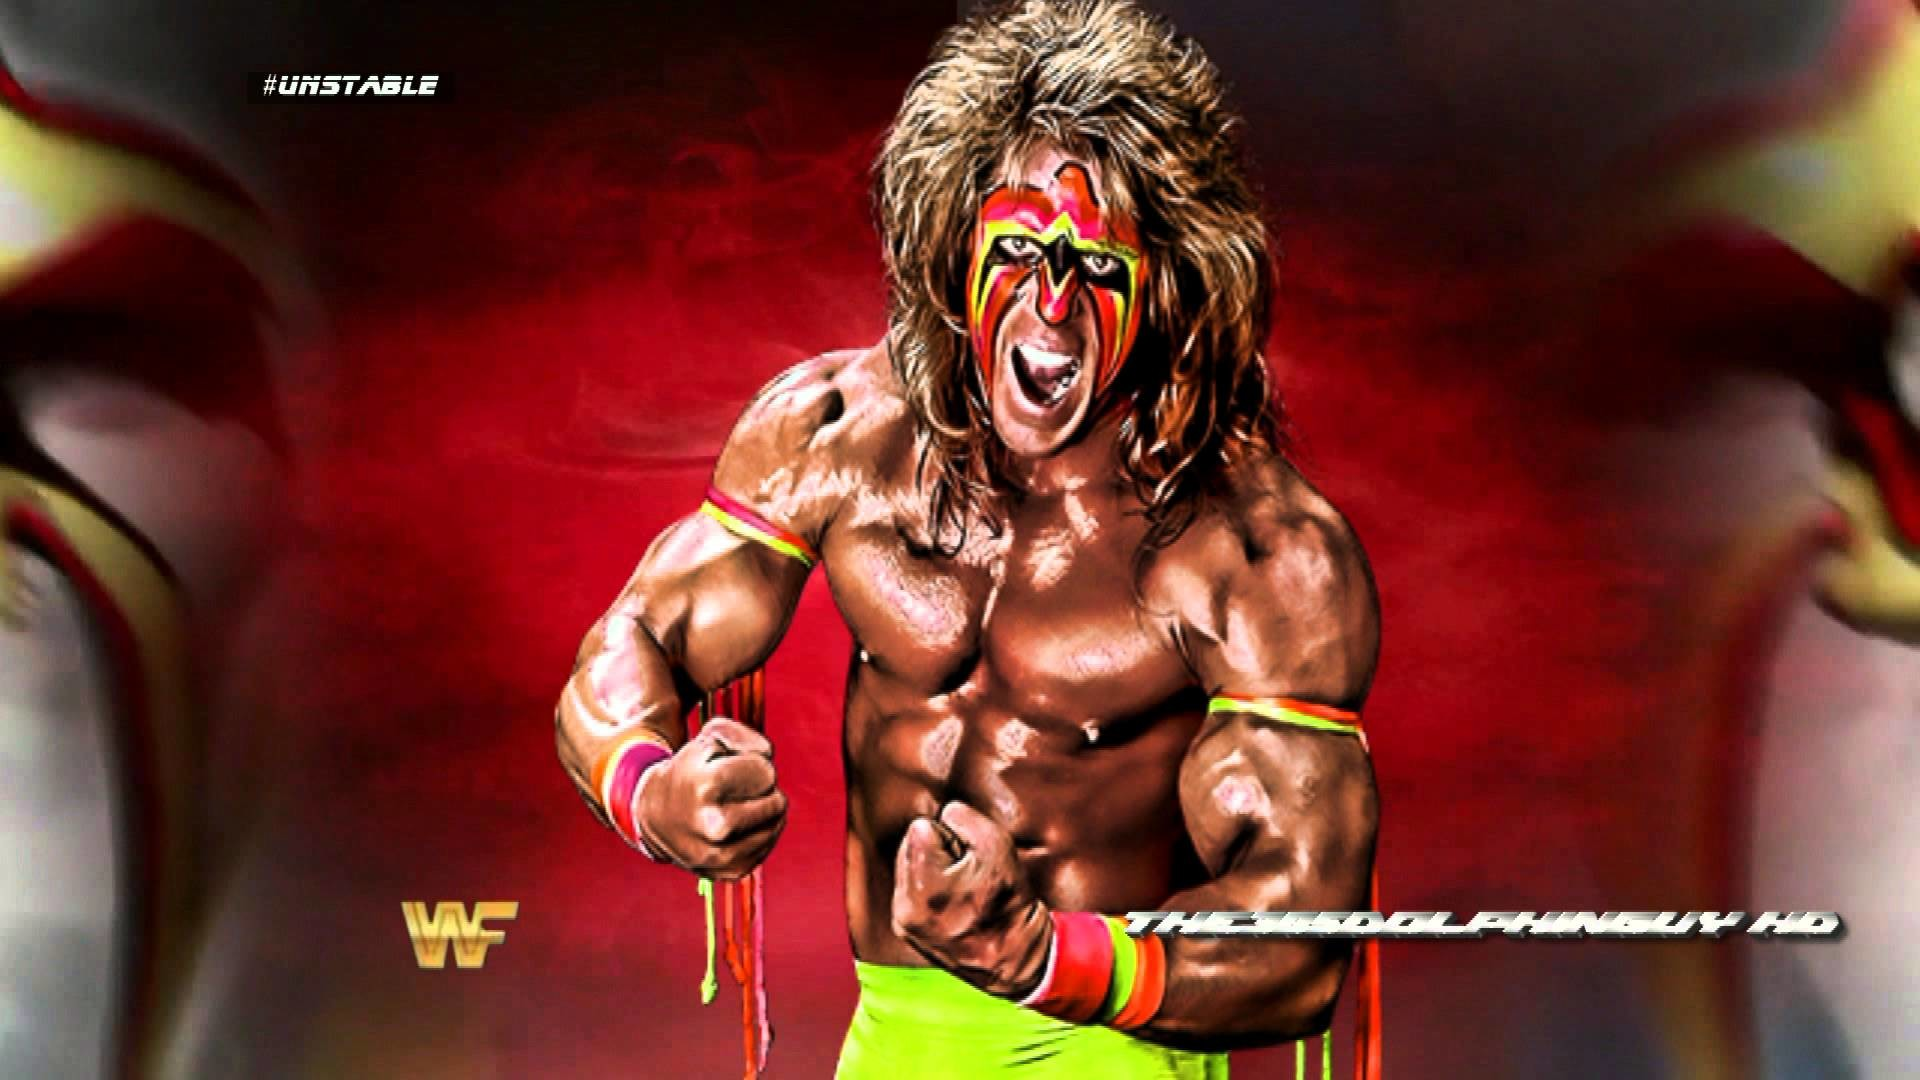 WWE: Ultimate Warrior 1st Theme – Unstable (HQ + Arena Effects .